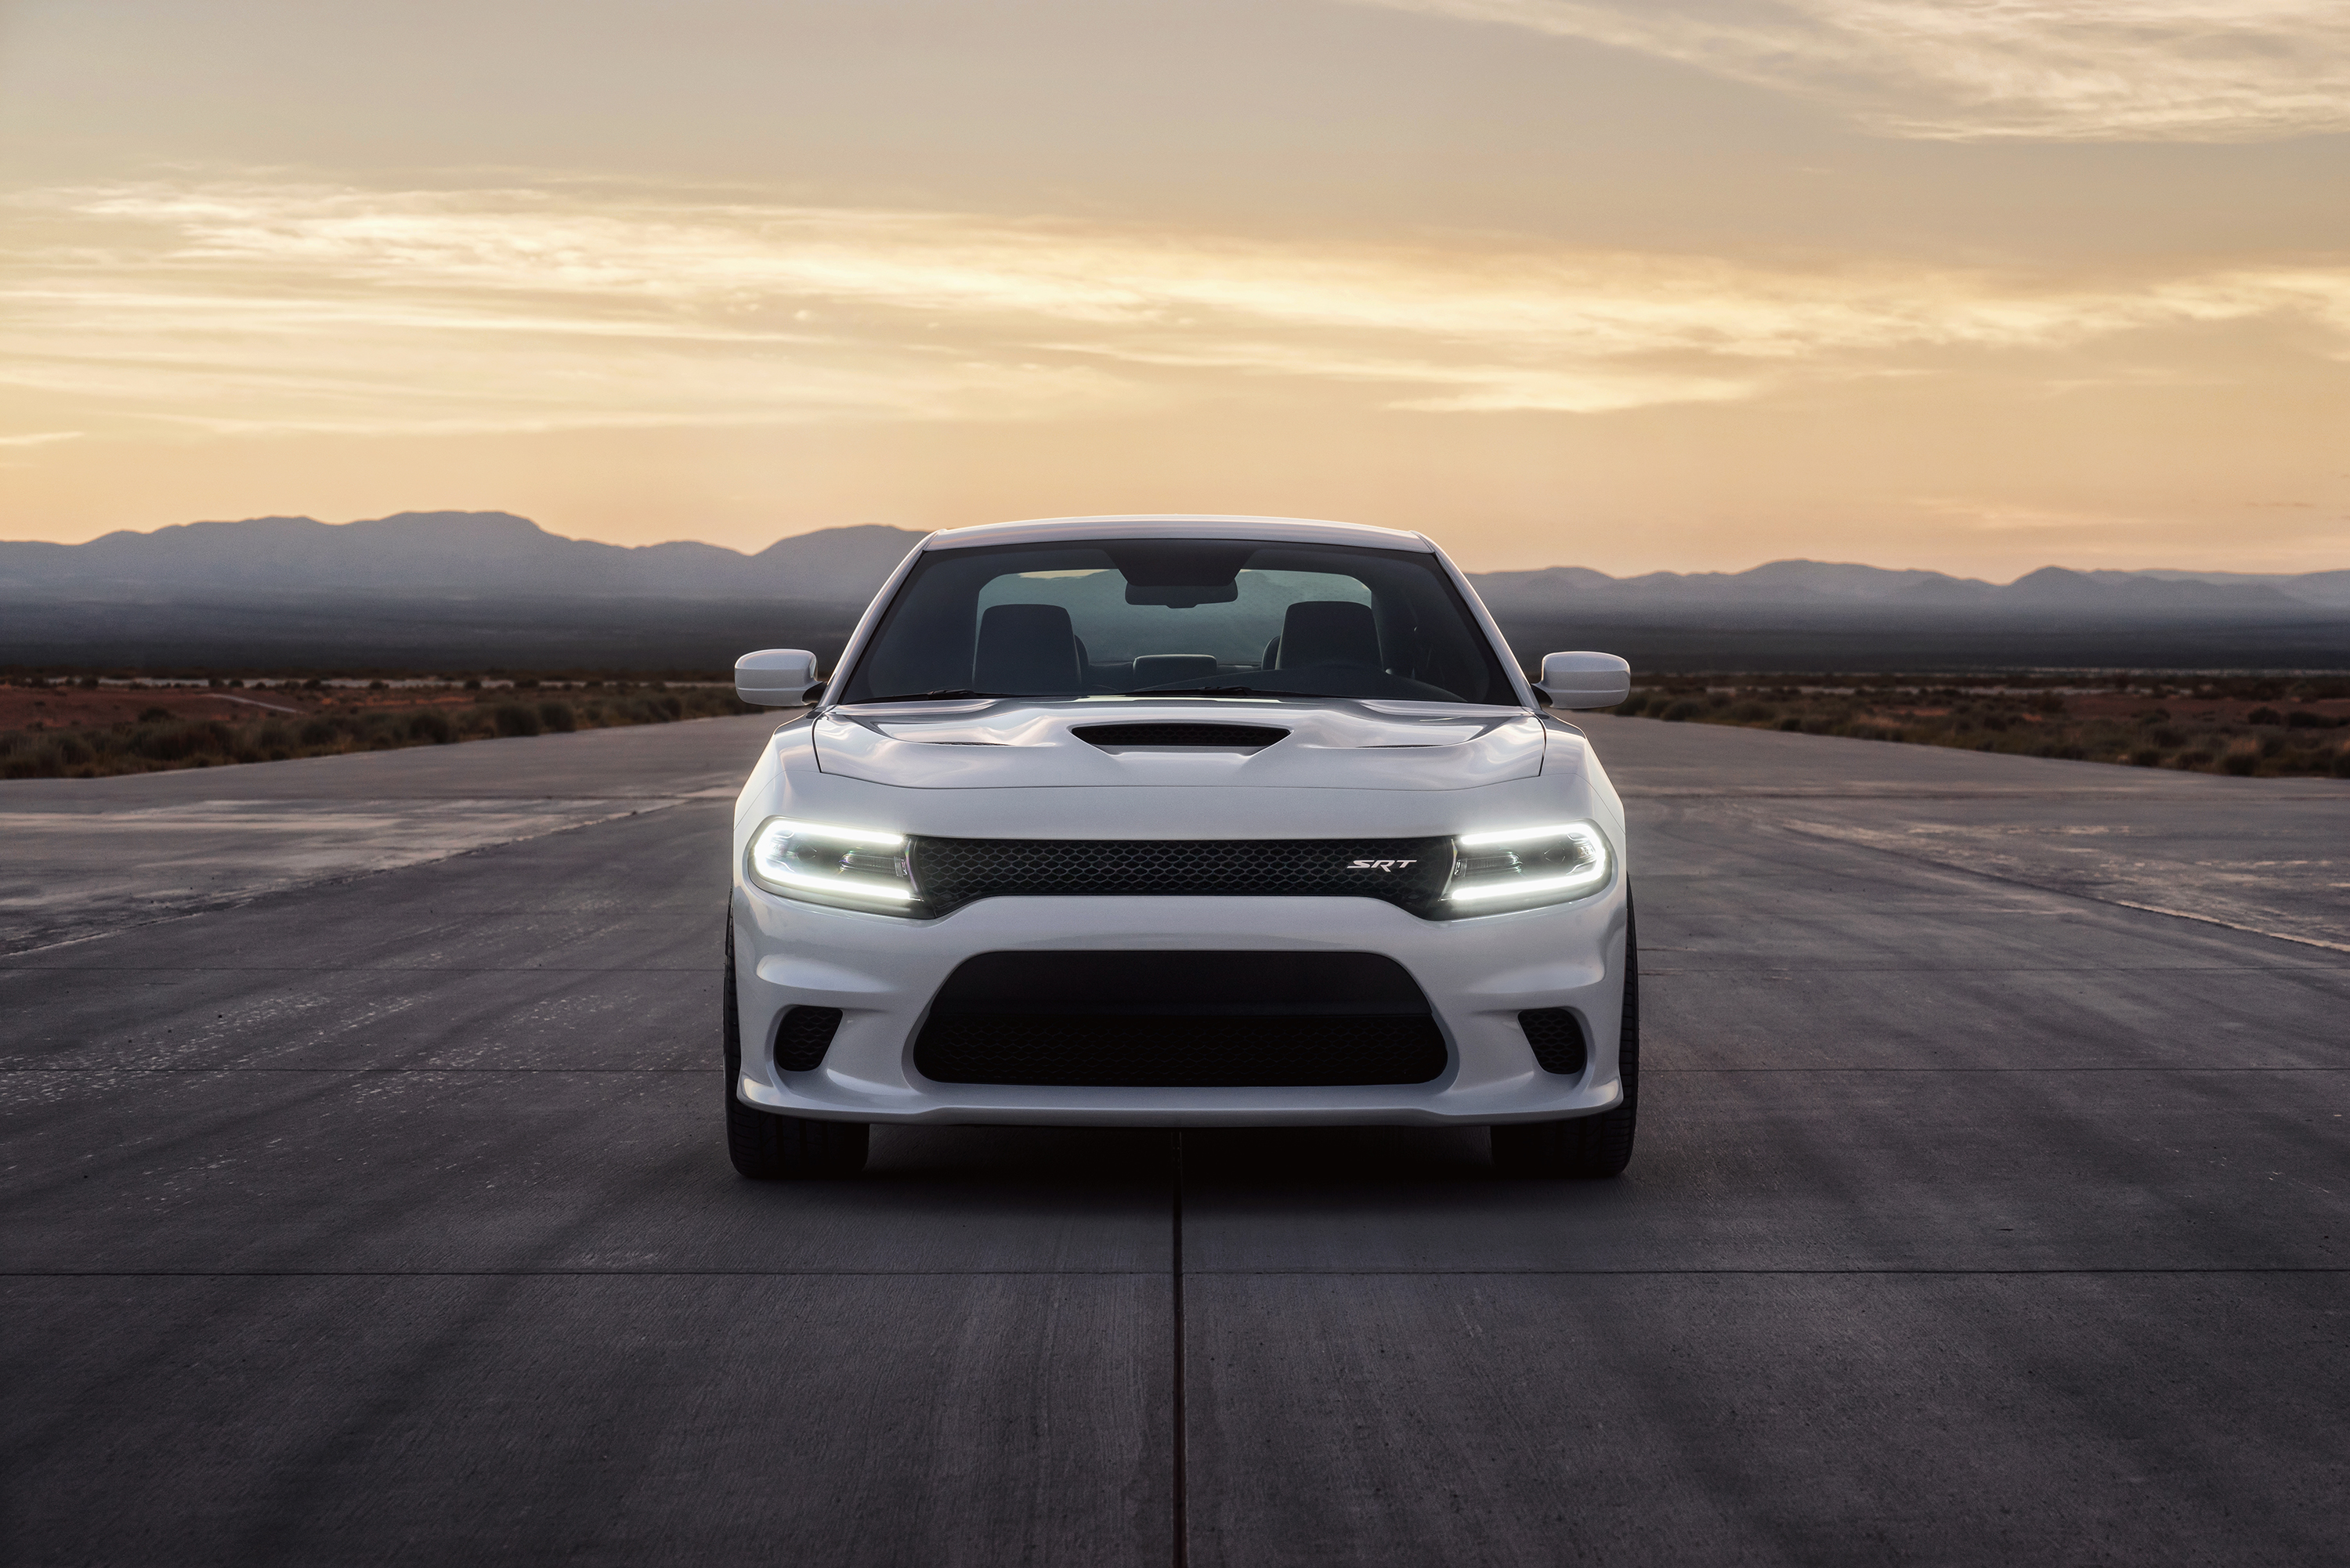 Dodge Charger Srt Hellcat 707 Hp V8 Muscle Saloon Image